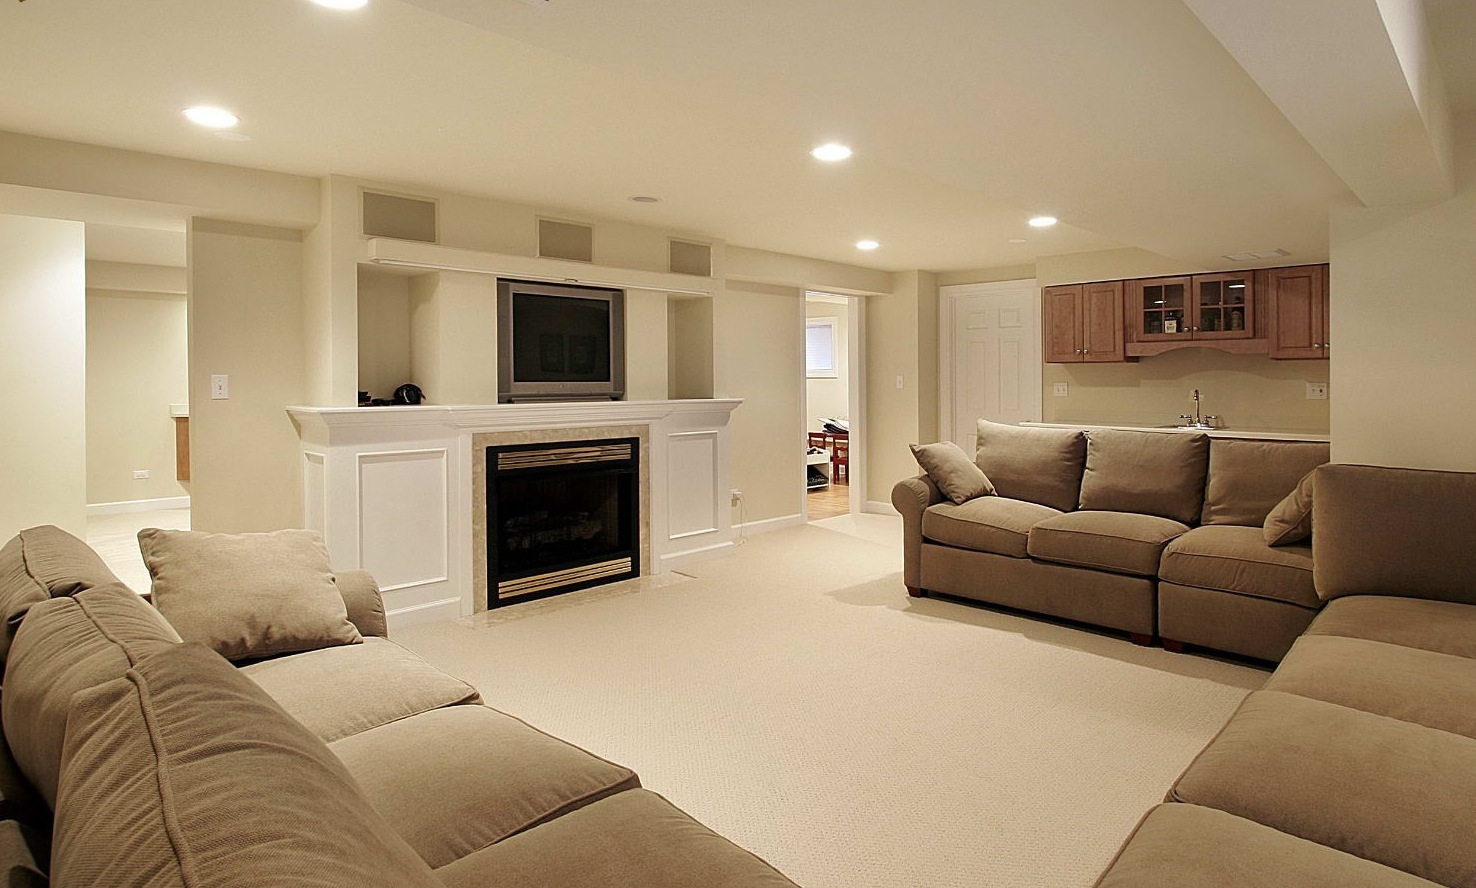 Basement Design Ideas finished basement design ideasagreeable interior design ideas 30 Basement Remodeling Ideas Inspiration